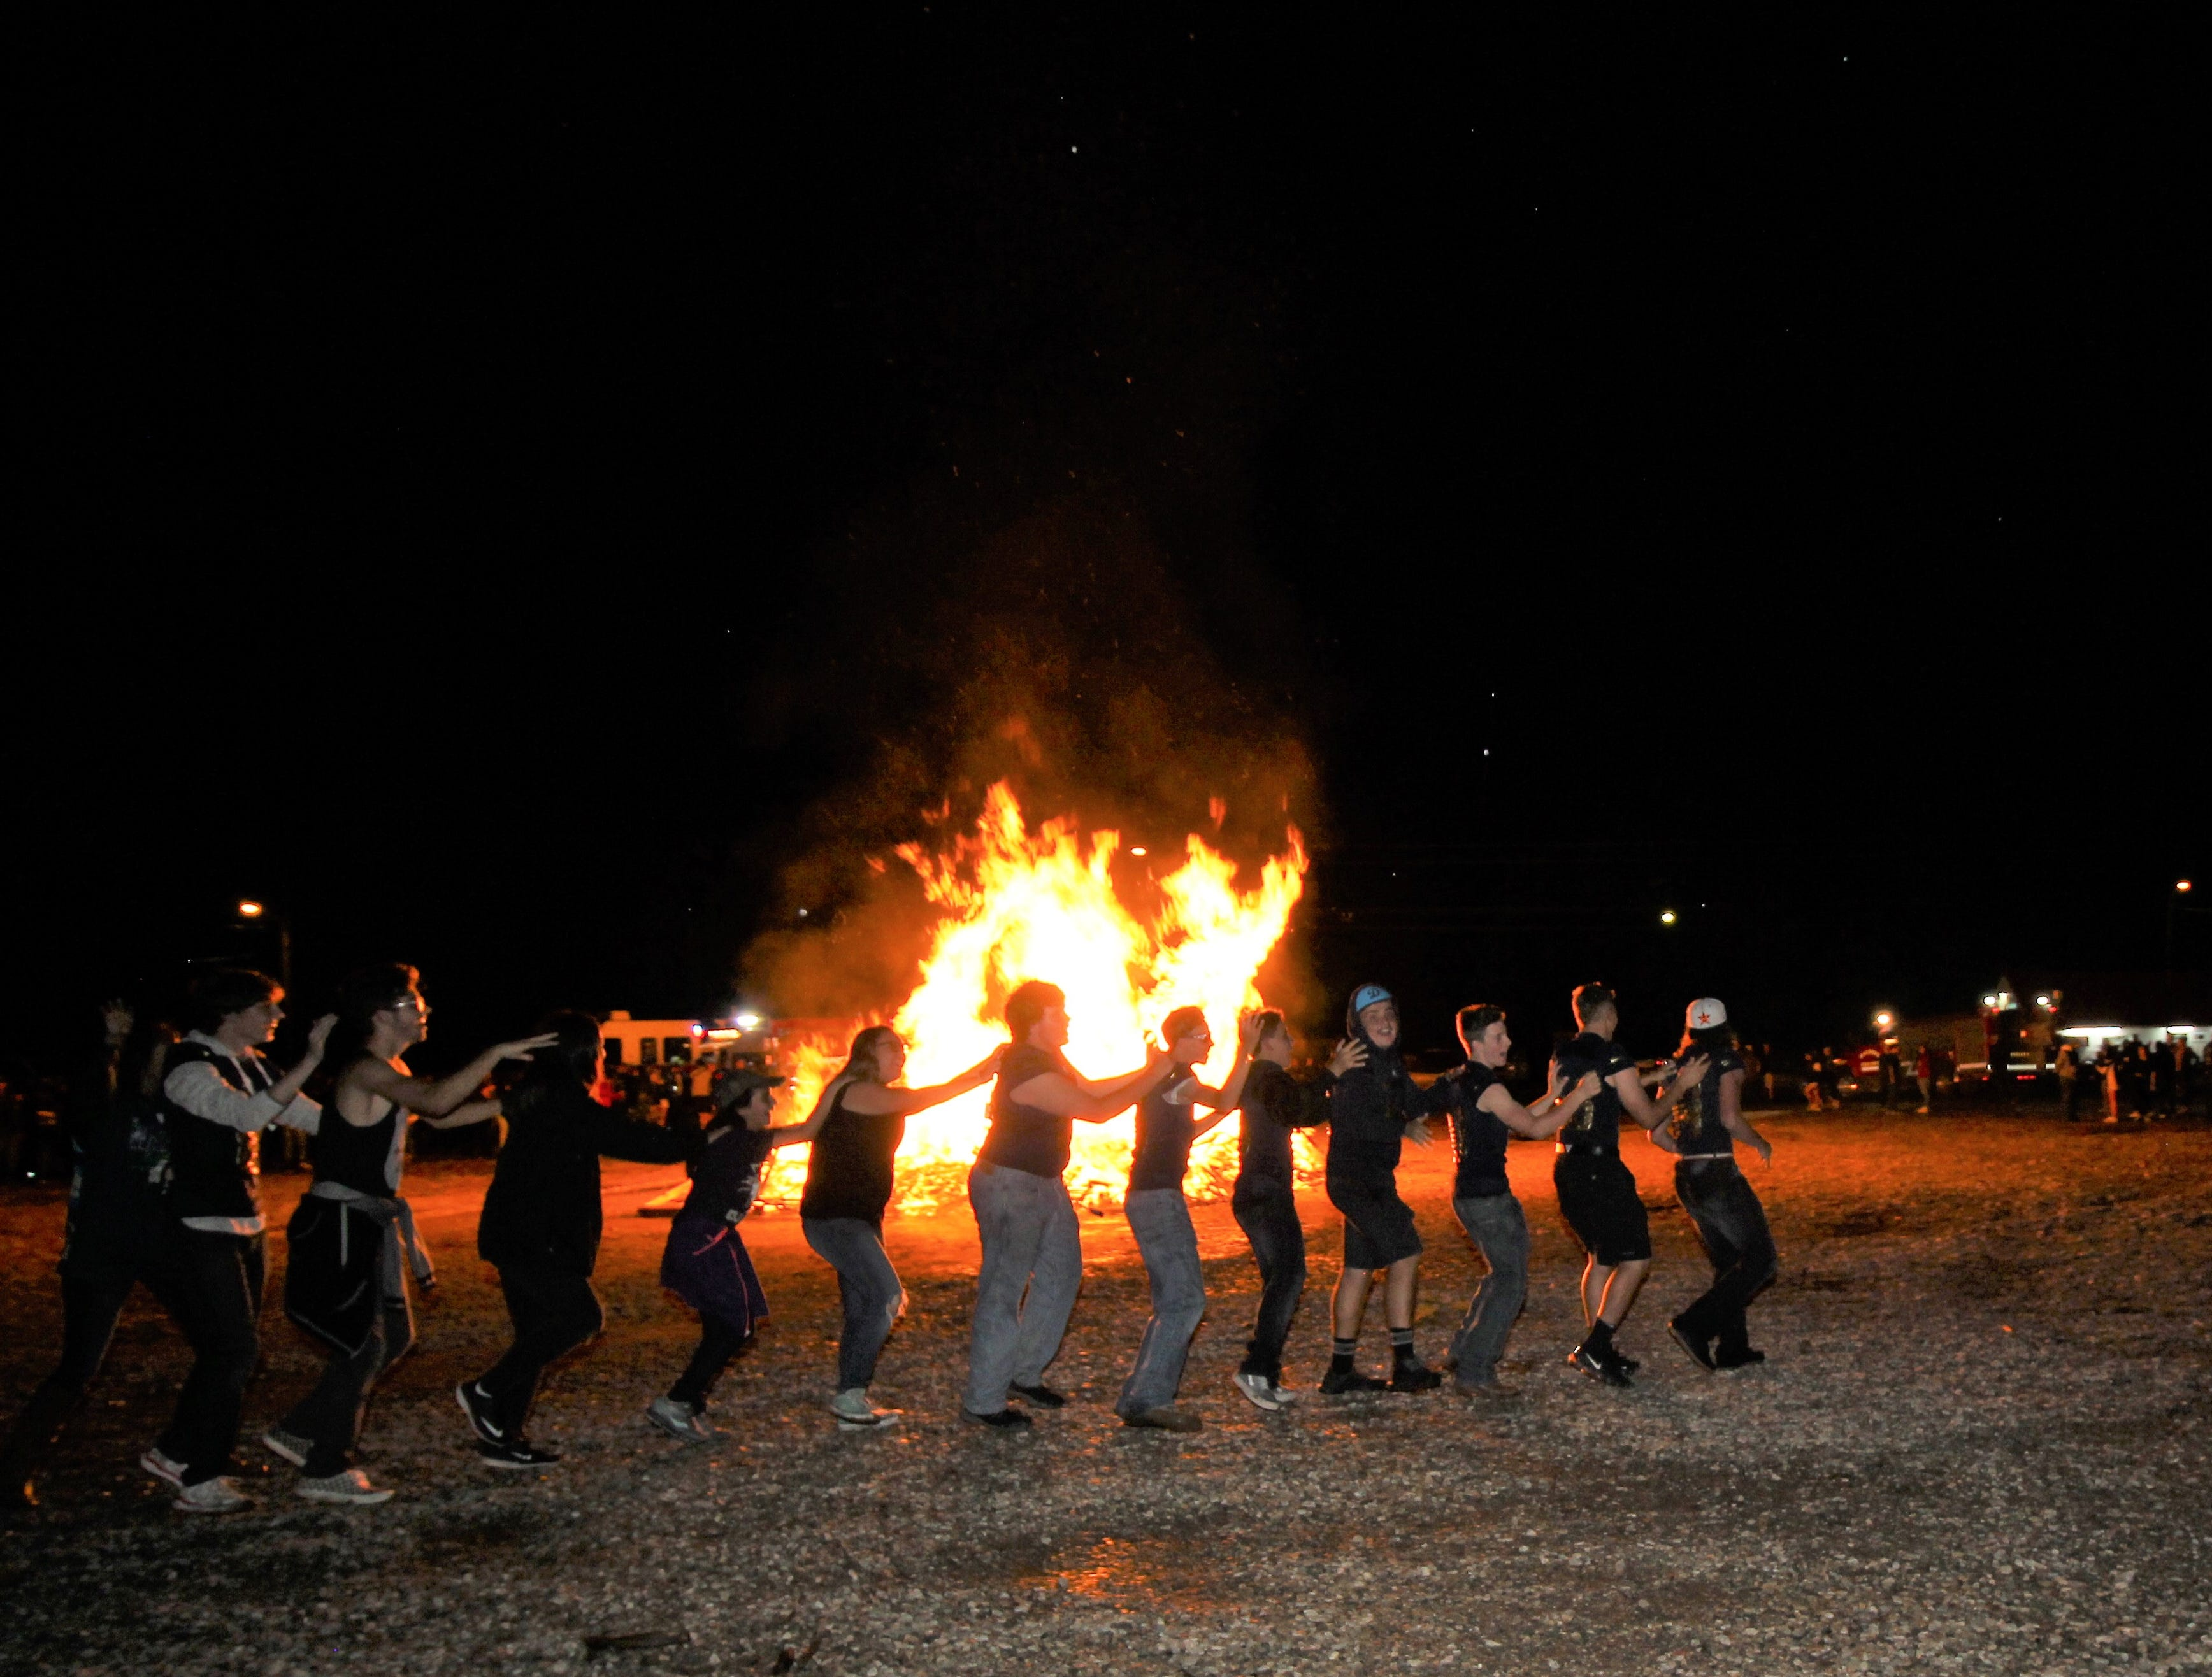 Warrior Conga dances around the burning effigy of the Tularosa Wildcat at the 2018 Homecoming bonfire.